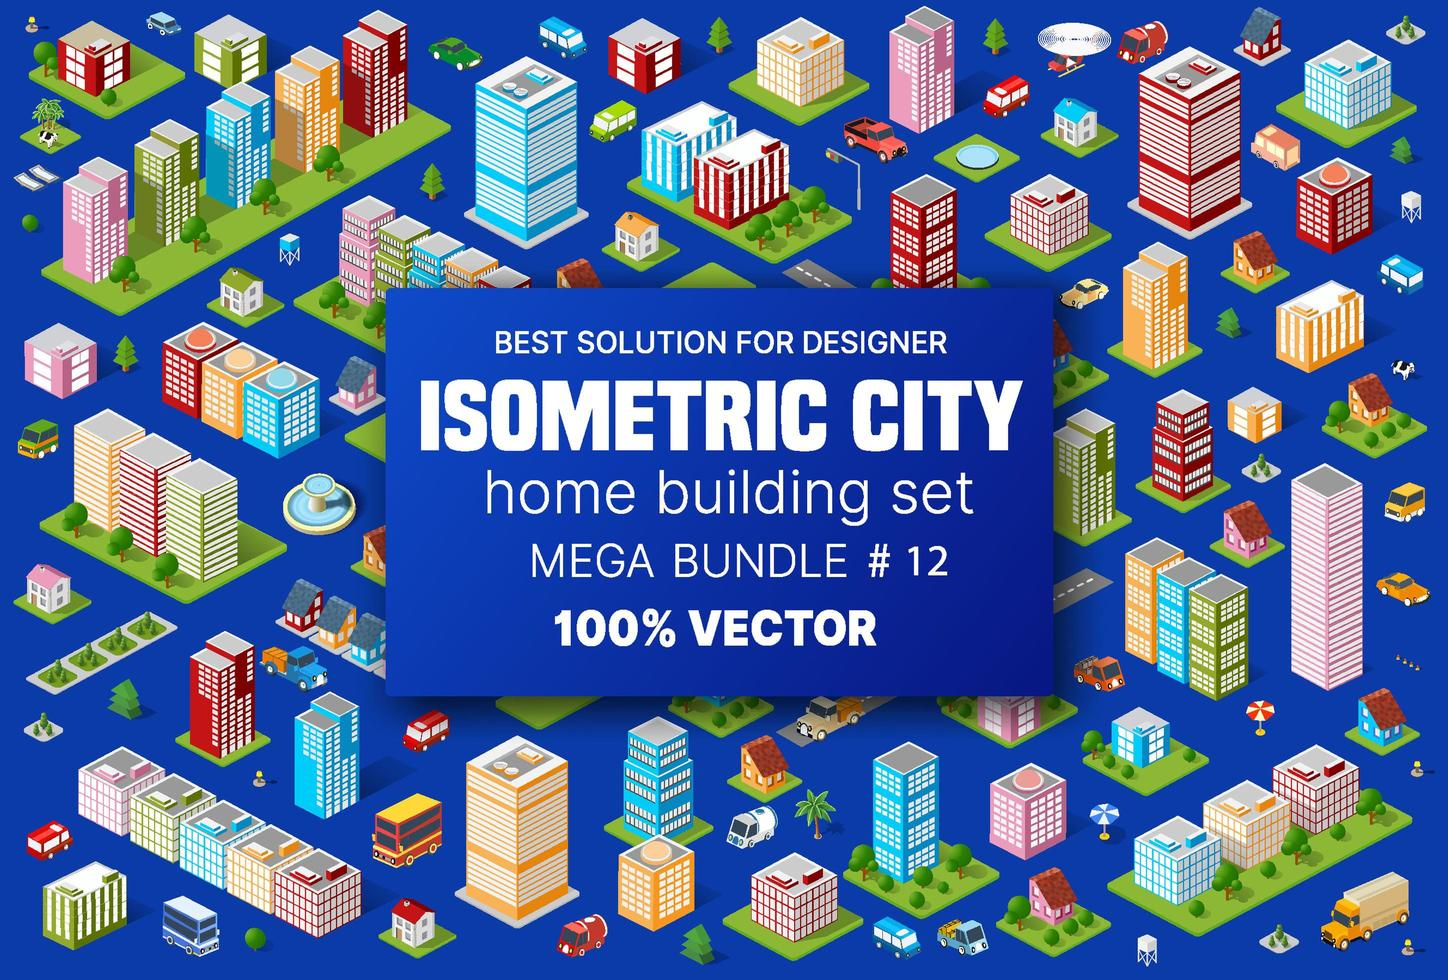 Isometric set building houses icons of blocks module of areas of the city construction, and designing of the perspective urban of design of the architecture environment vector